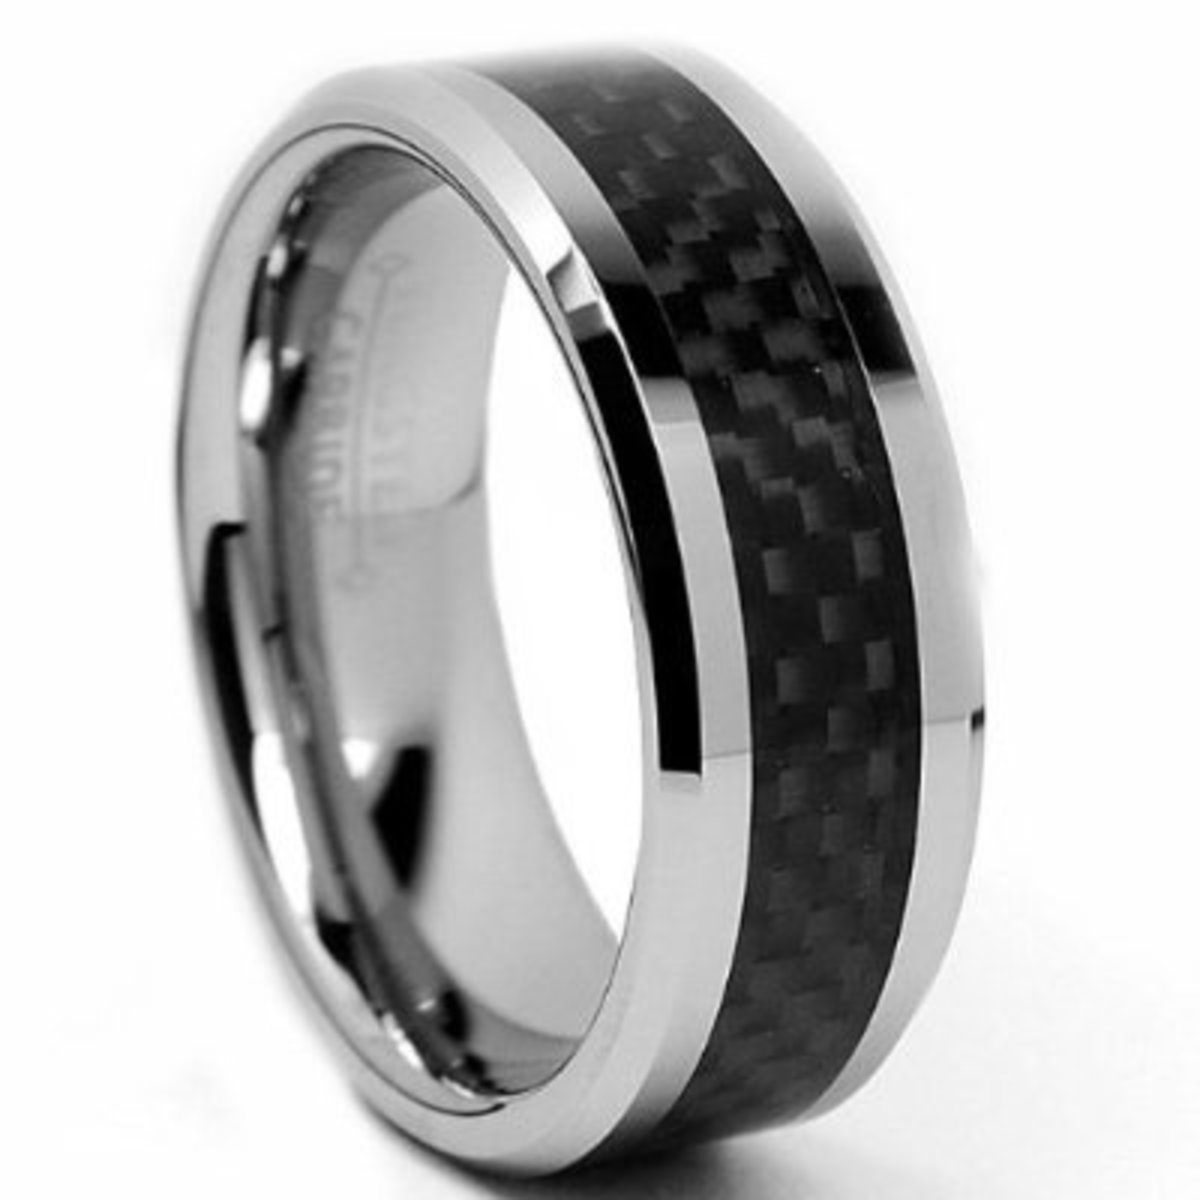 Metal Masters Co. 8MM Men's Tungsten Carbide Ring Wedding Band with Carbon Fiber Inlay